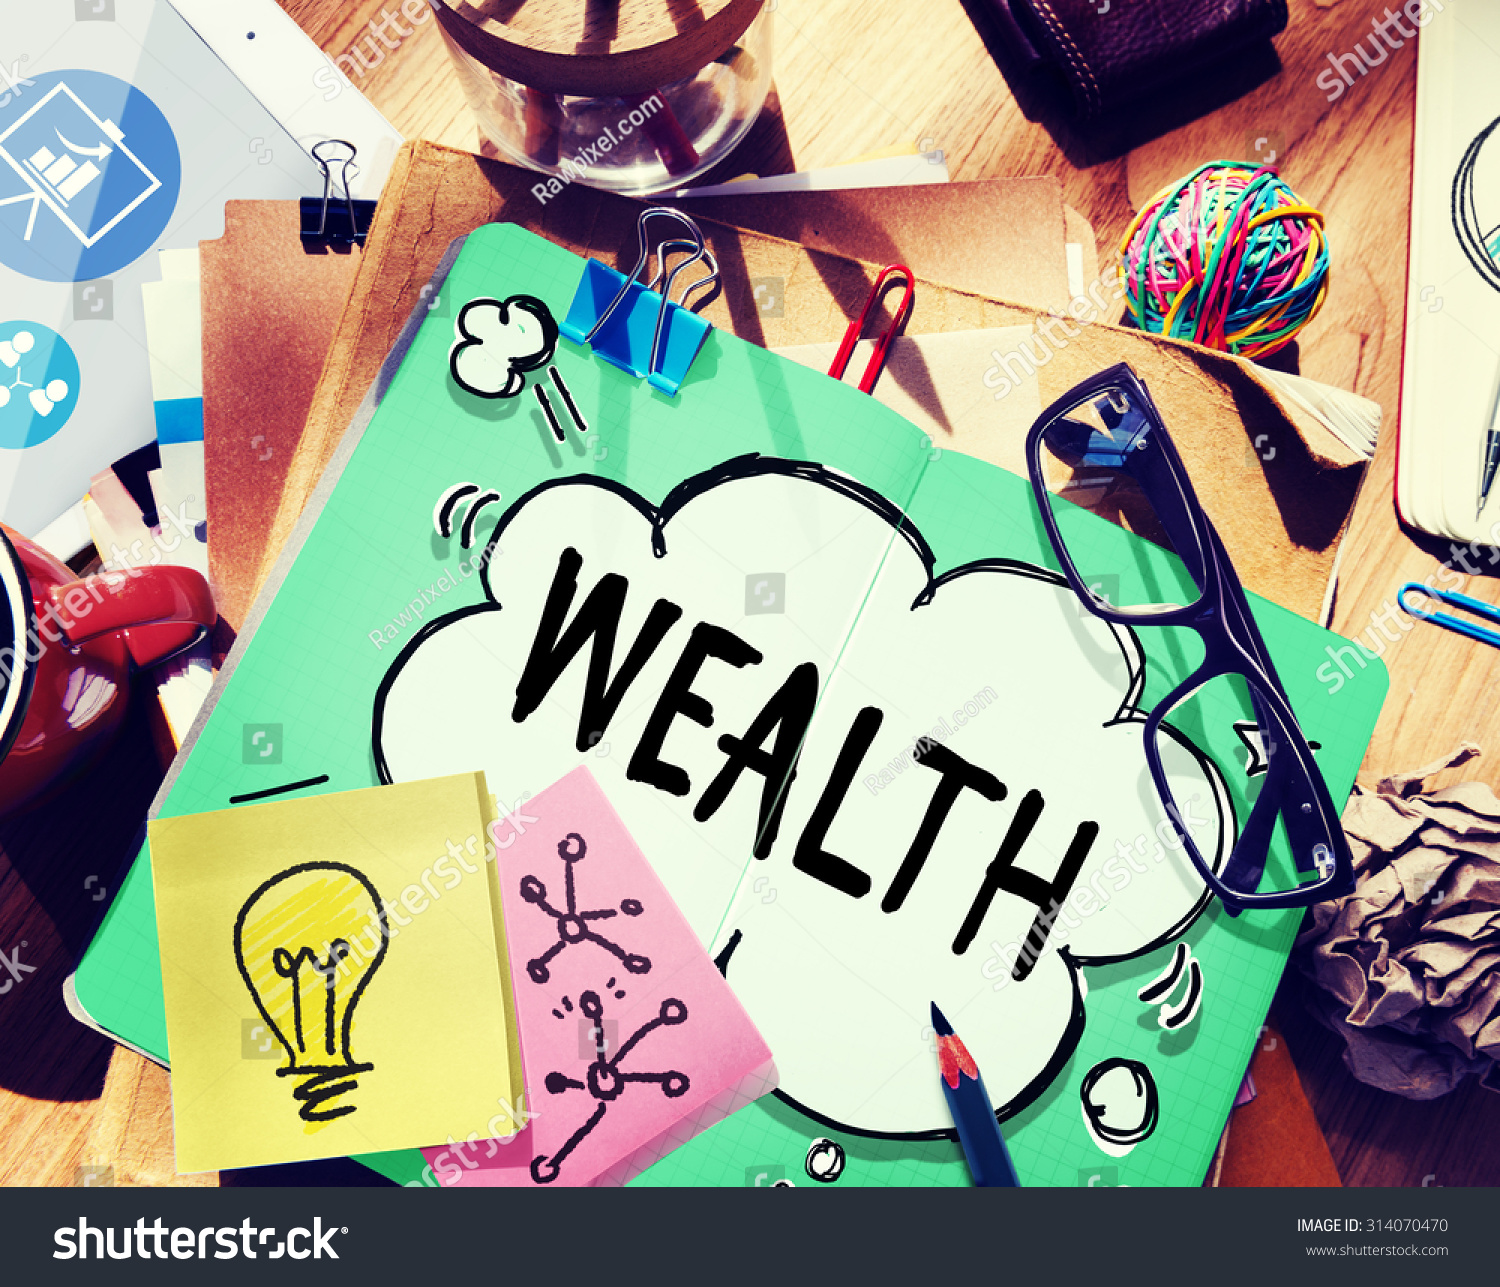 the concept of wealth in the The concept of wealth in the context of wealth maximisation objective refers to the shareholders' wealth as reflected by the market price of their shares in the share market hence, maximisation of wealth means maximisation of the market price of the equity shares of the company.